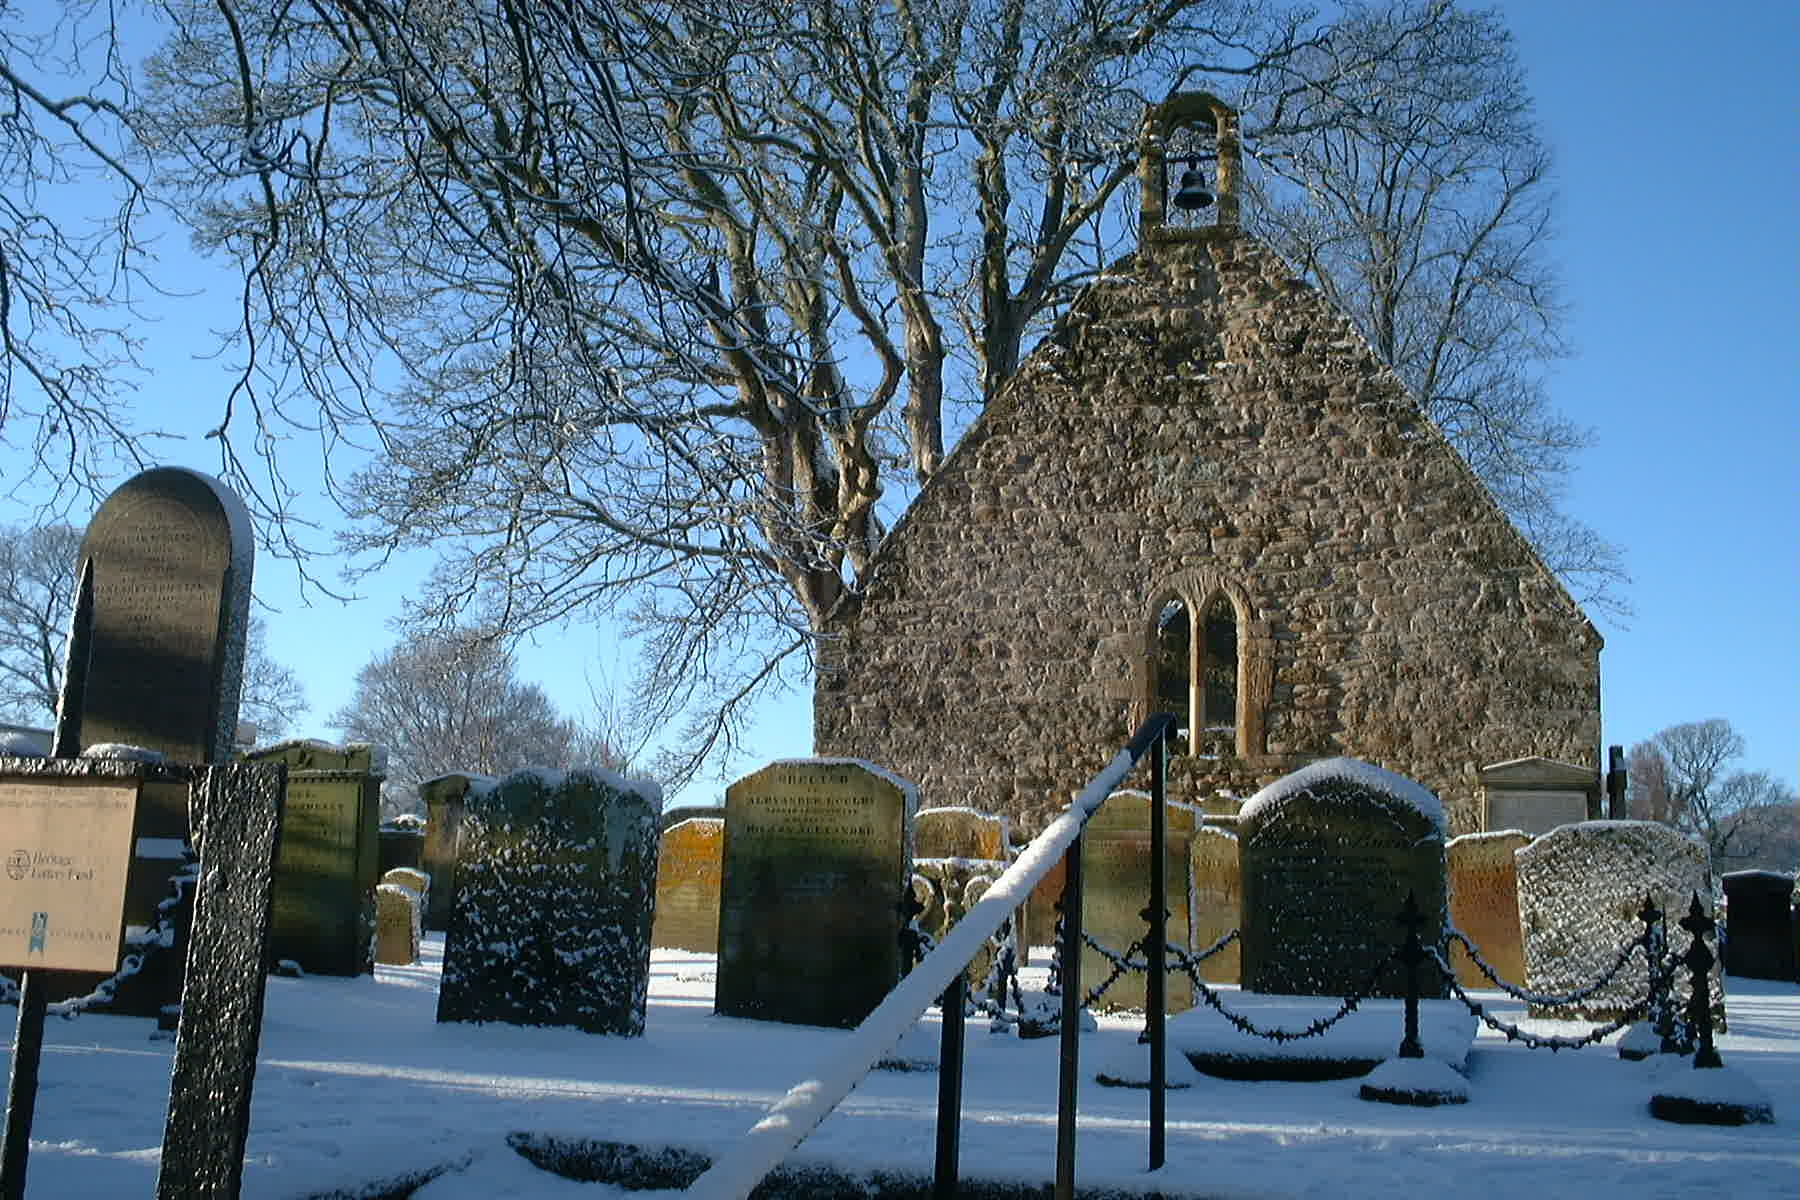 Auld Kirk Alloway, Ayr Jan 5th 2010 by Reg Tait